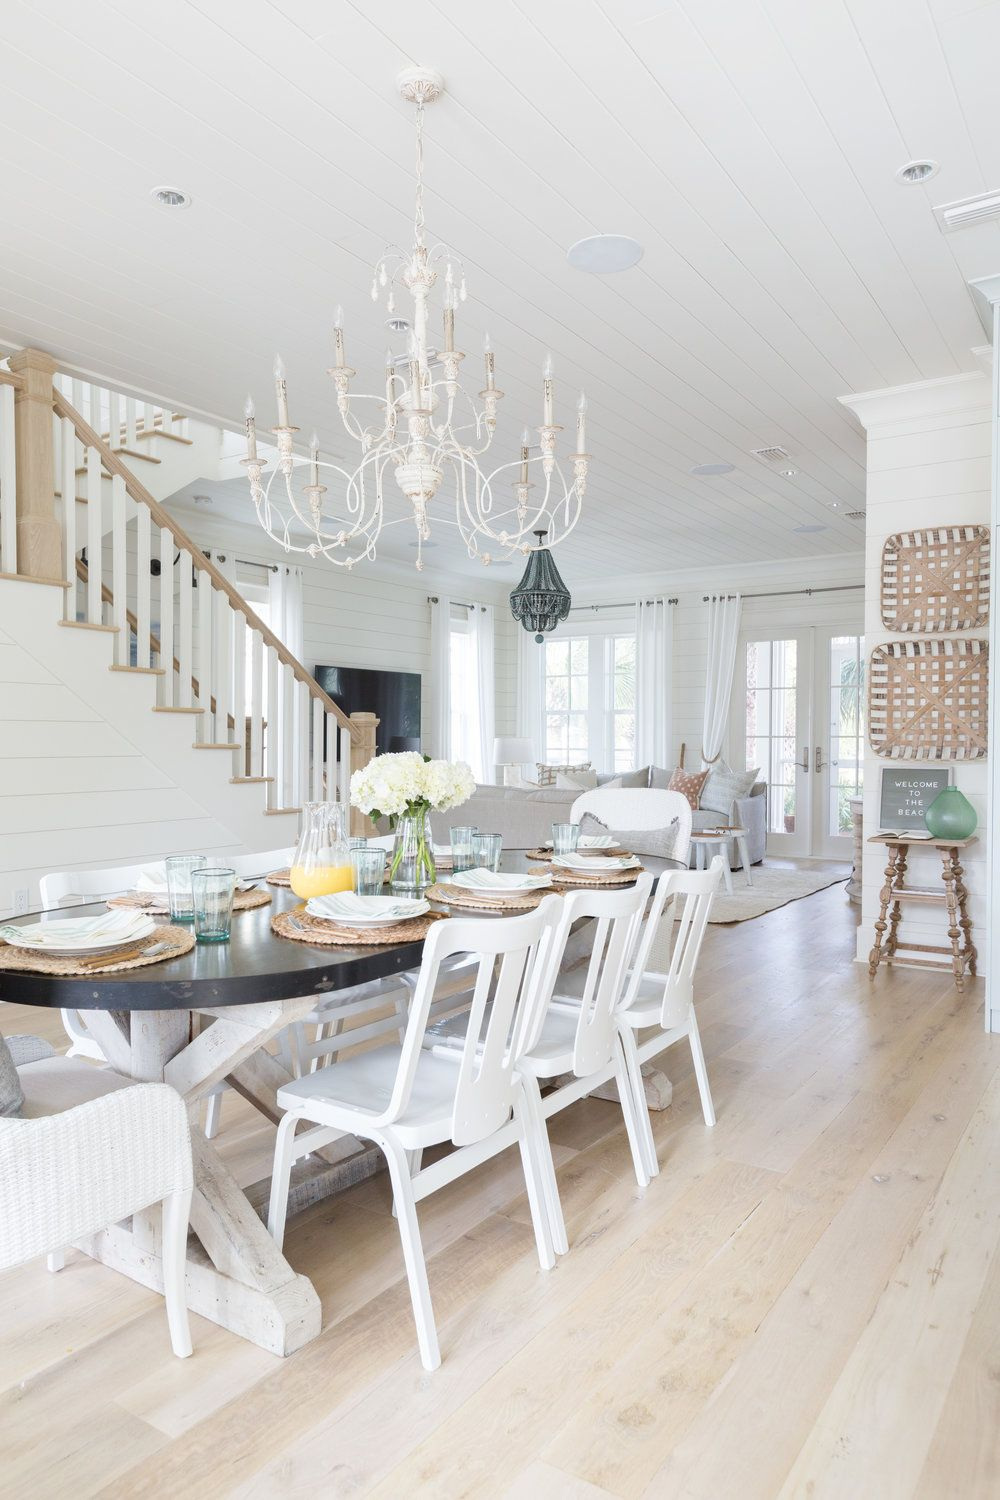 beach houses Dream Beach Houses To Drive Your Decor Inspiration Beach House Dining Rooms Youll Want ASAP 1  Front Page Beach House Dining Rooms Youll Want ASAP 1